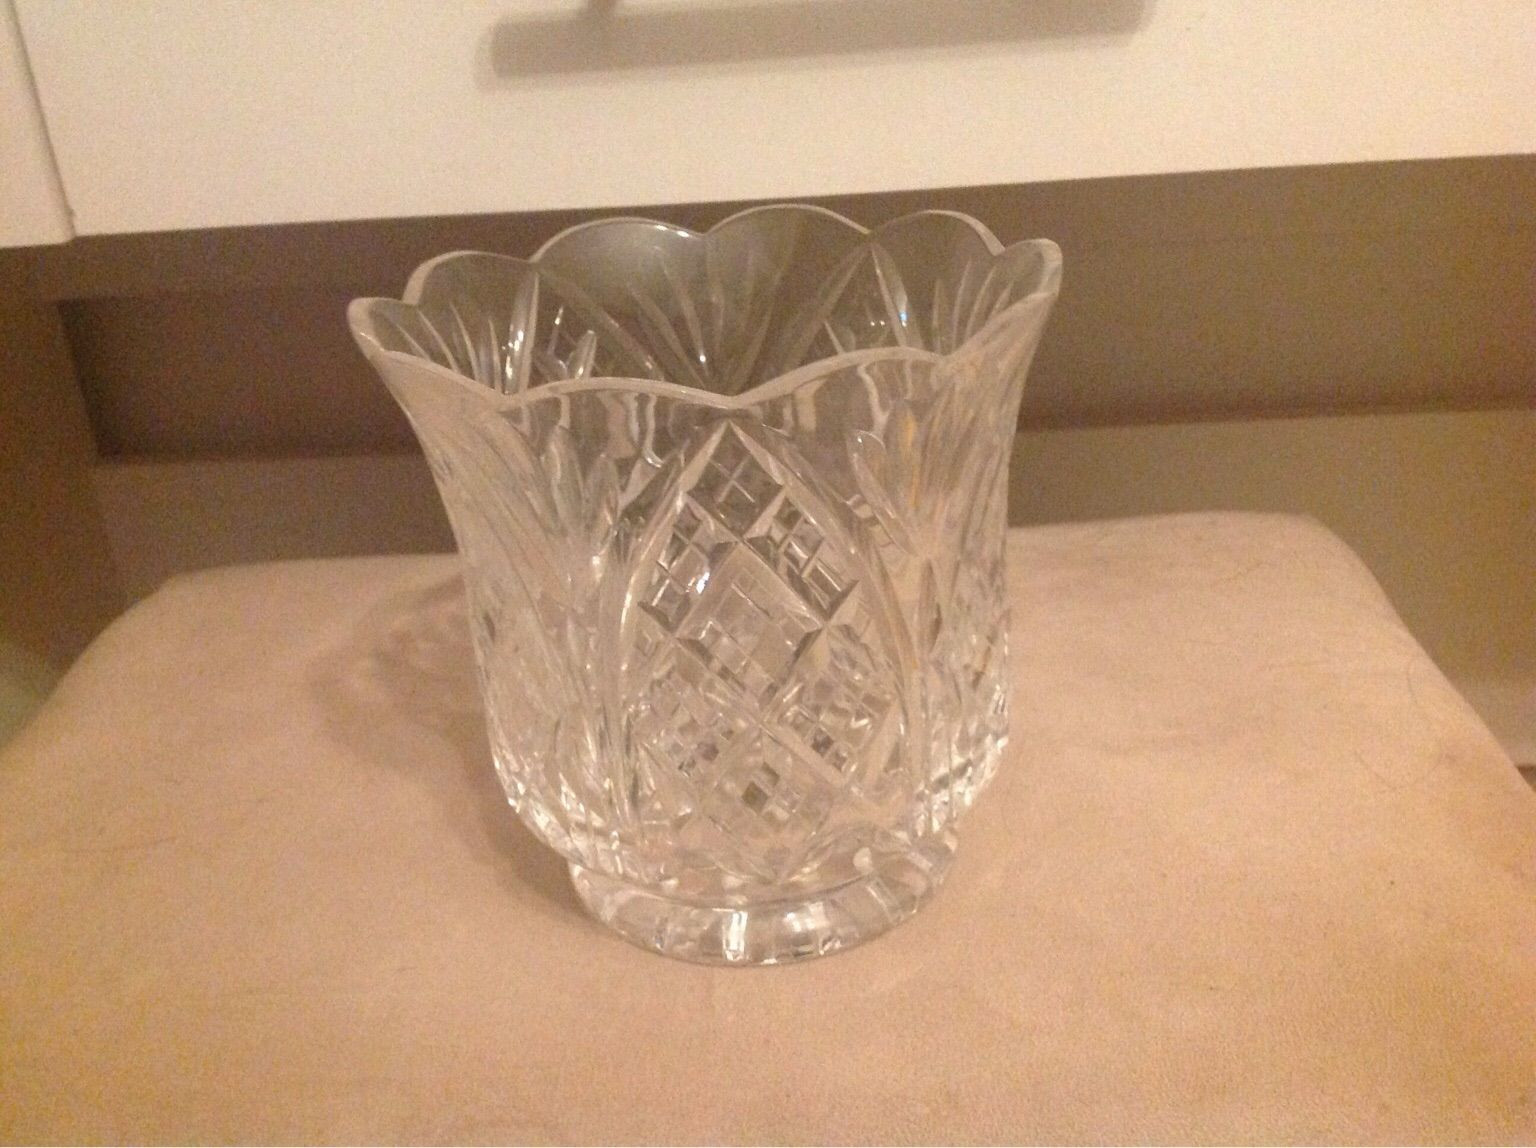 waterford crystal vase 14 inch of https en shpock com i wmucfctt7rd3b1cr 2018 10 10t015529 regarding waterford crystal vase 20af0c92